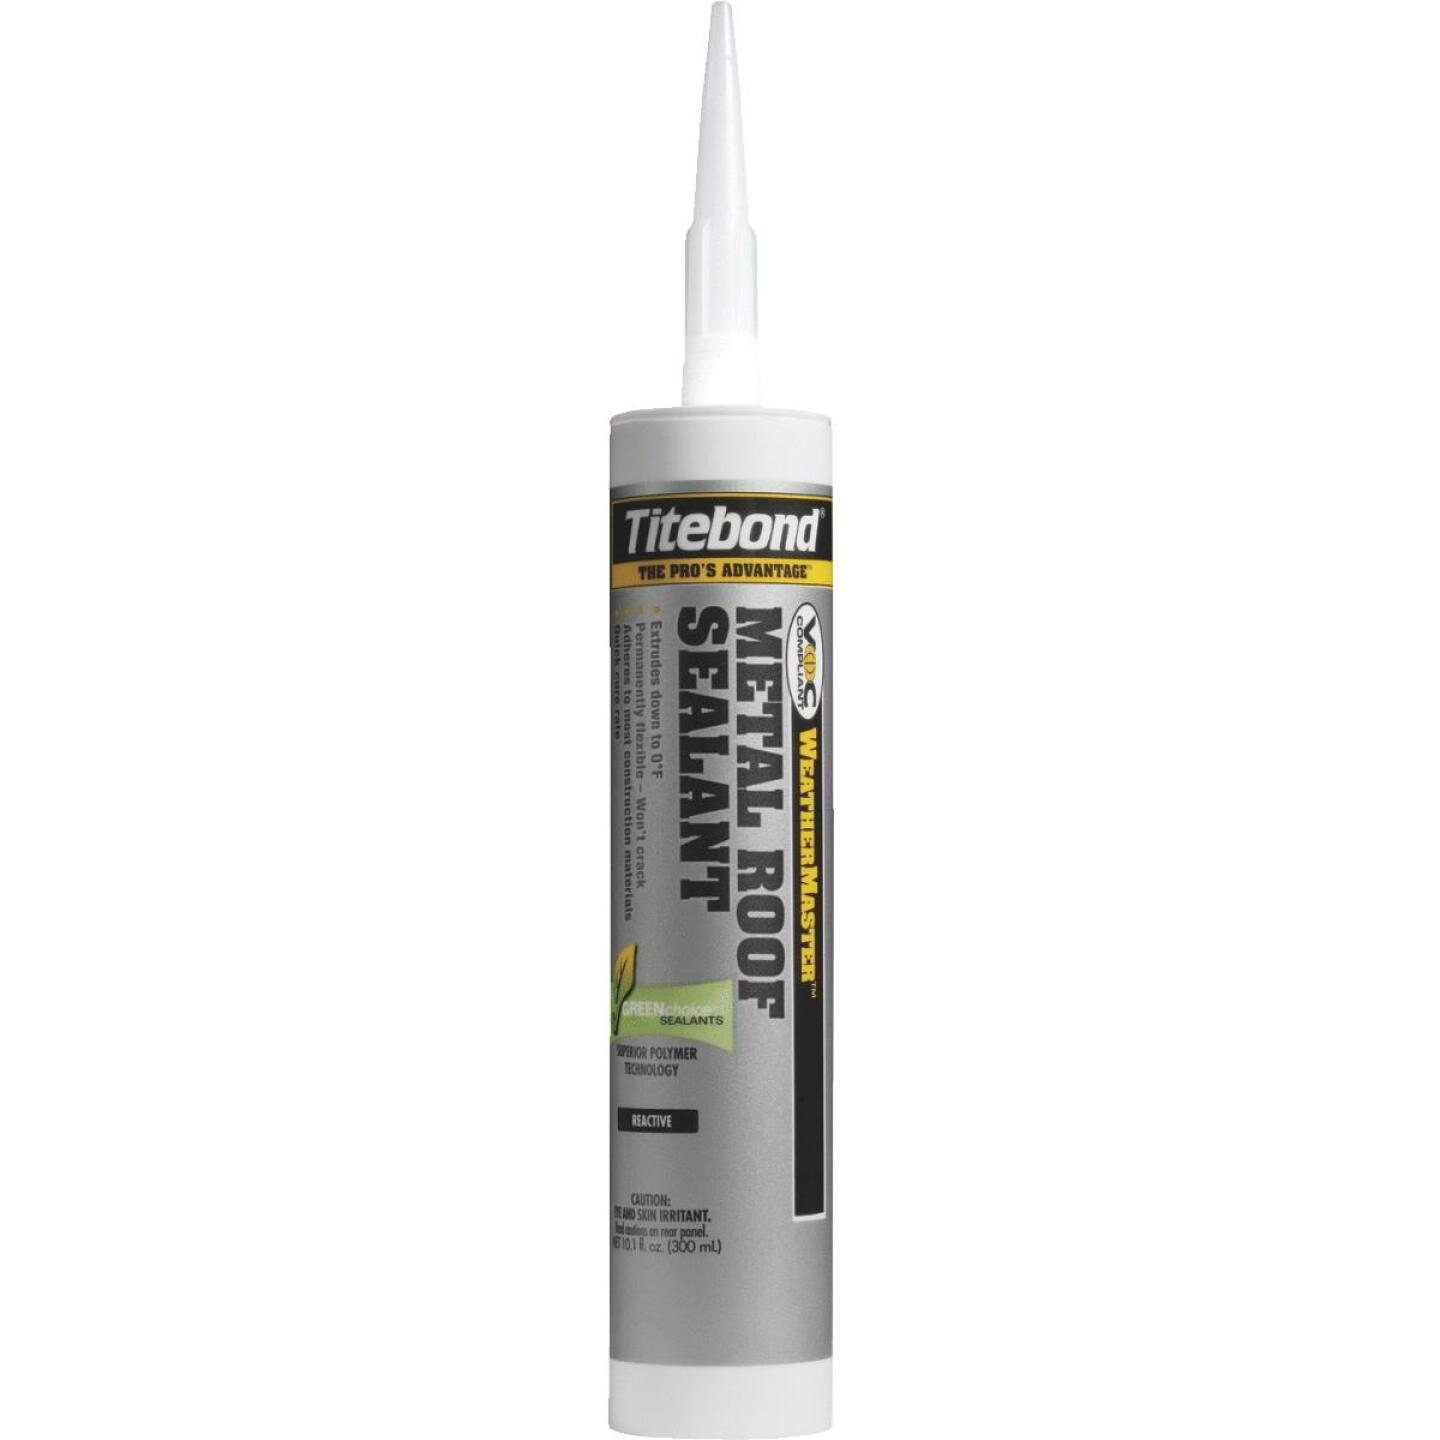 TiteBond Weathermaster 10 Oz. White Metal Roof Sealant Image 1